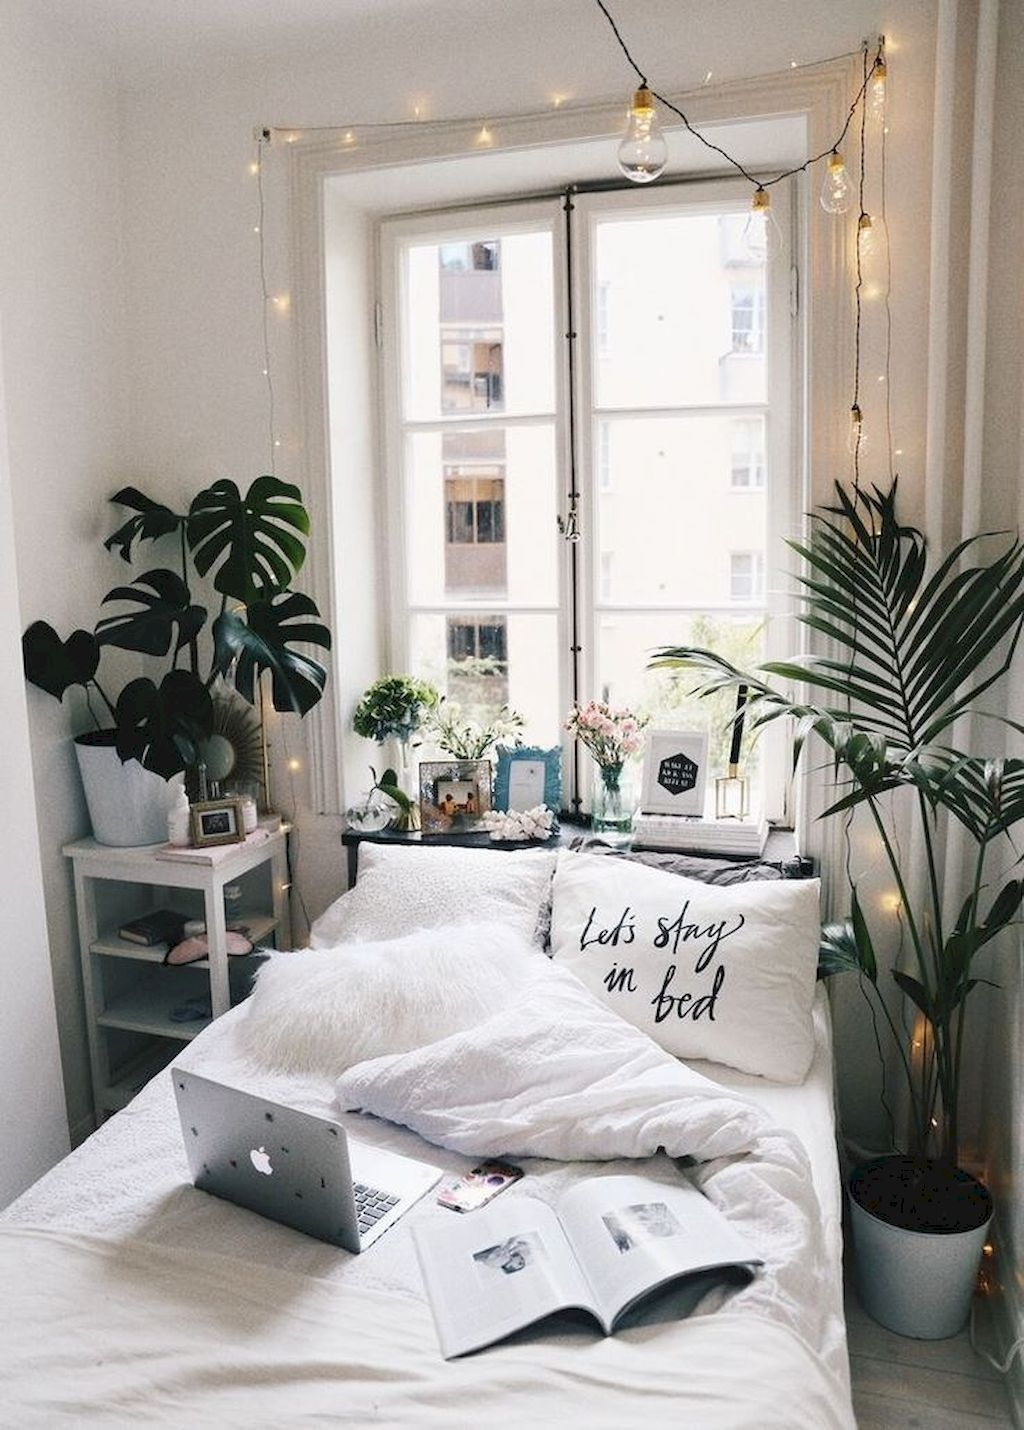 Cute College Apartment Decoration Ideas 72 Roomodeling Small Bedroom Decor Small Bedroom Home